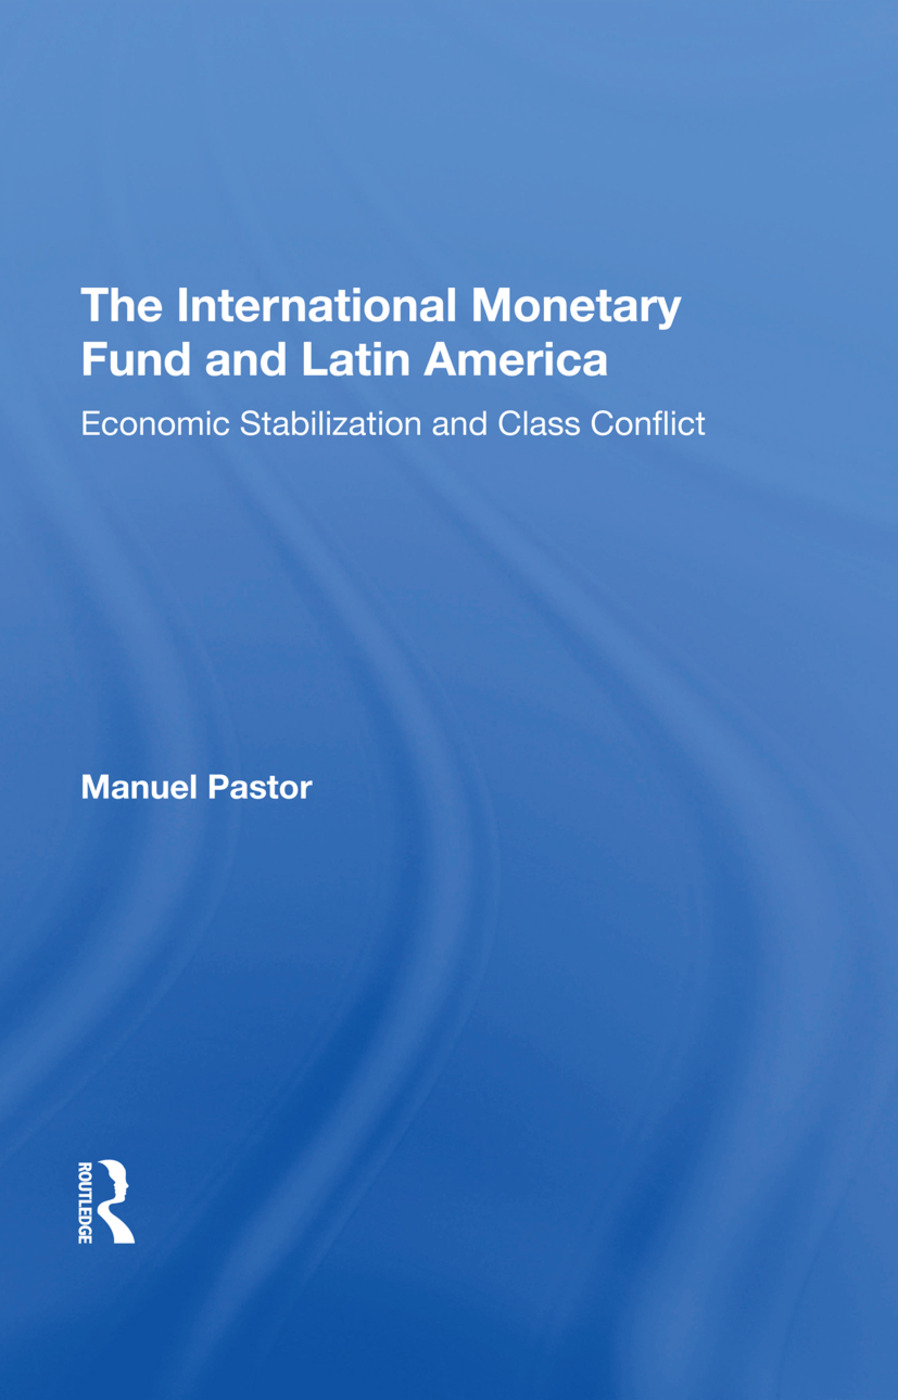 The International Monetary Fund And Latin America: Economic Stabilization And Class Conflict, 1st Edition (Hardback) book cover